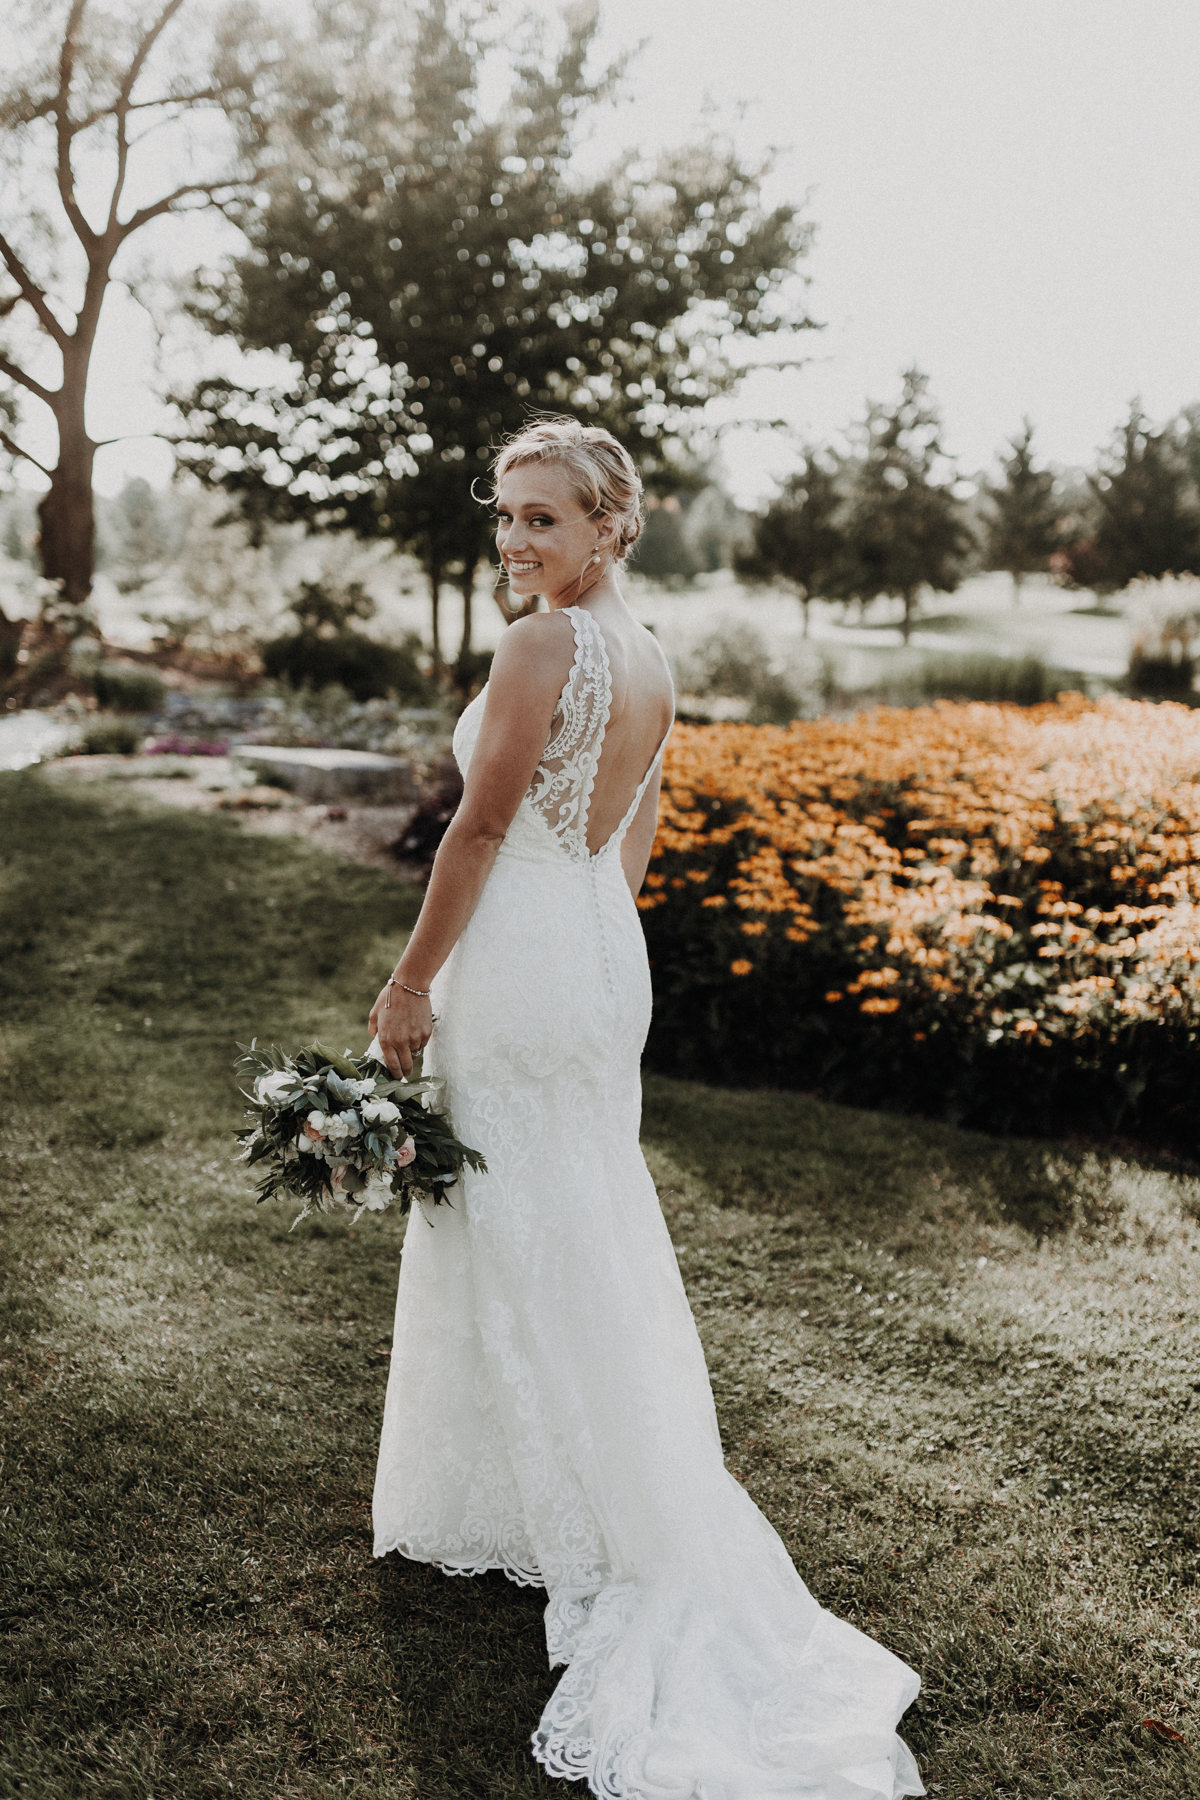 golfcourse_wedding_bride_lacedress_lowback.jpg